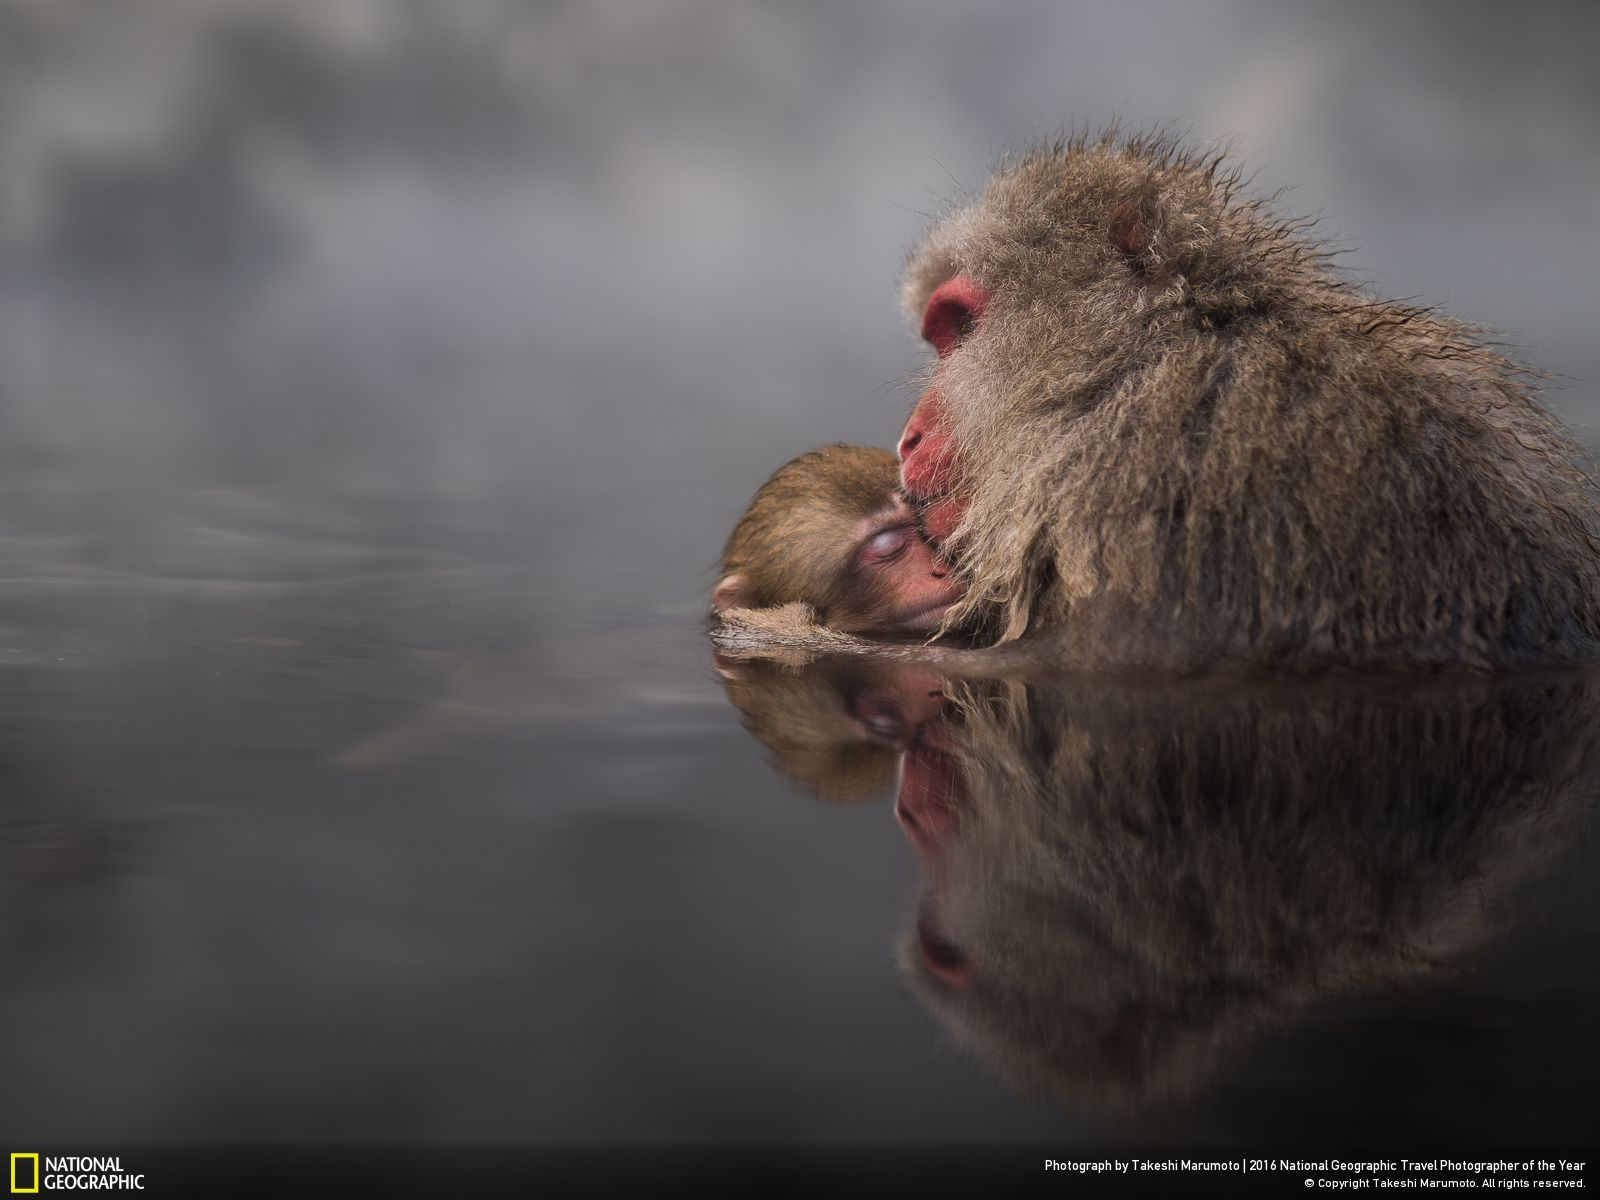 Saptamana 2 Concursul National Geographic Travel Photographer of the Year 2016